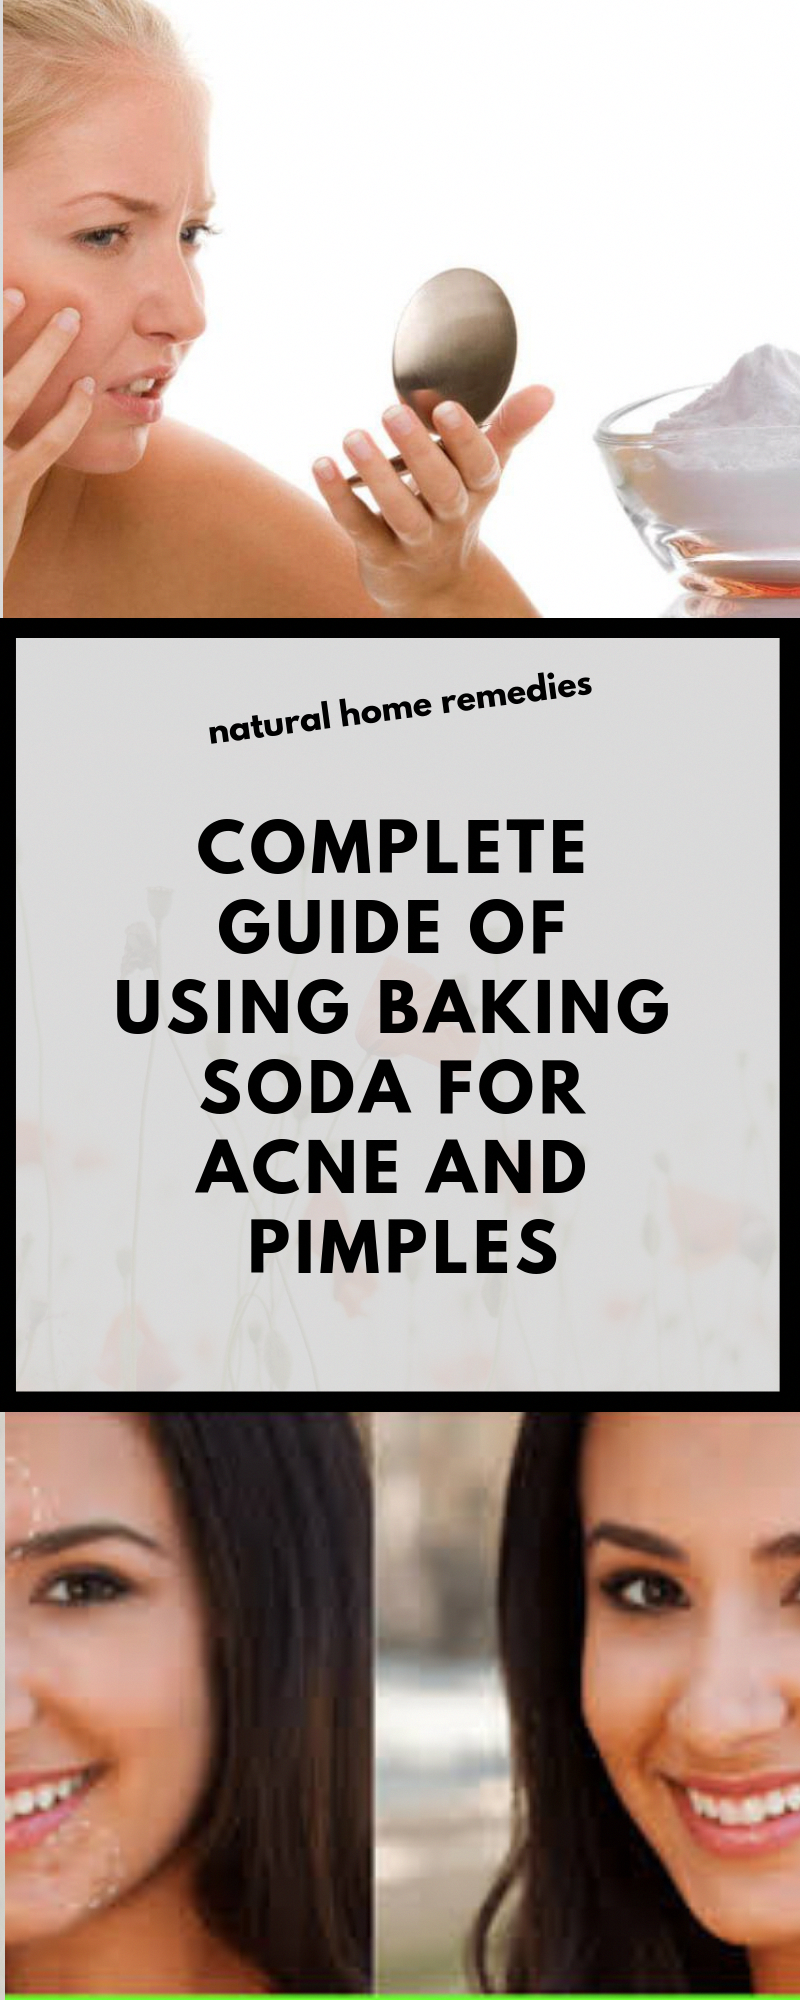 Baking soda sodium bicarbonate is one of the cheapest home remedies you can use to help you get rid of acne and pimplesAs anyone with acne knows it can be very difficult...